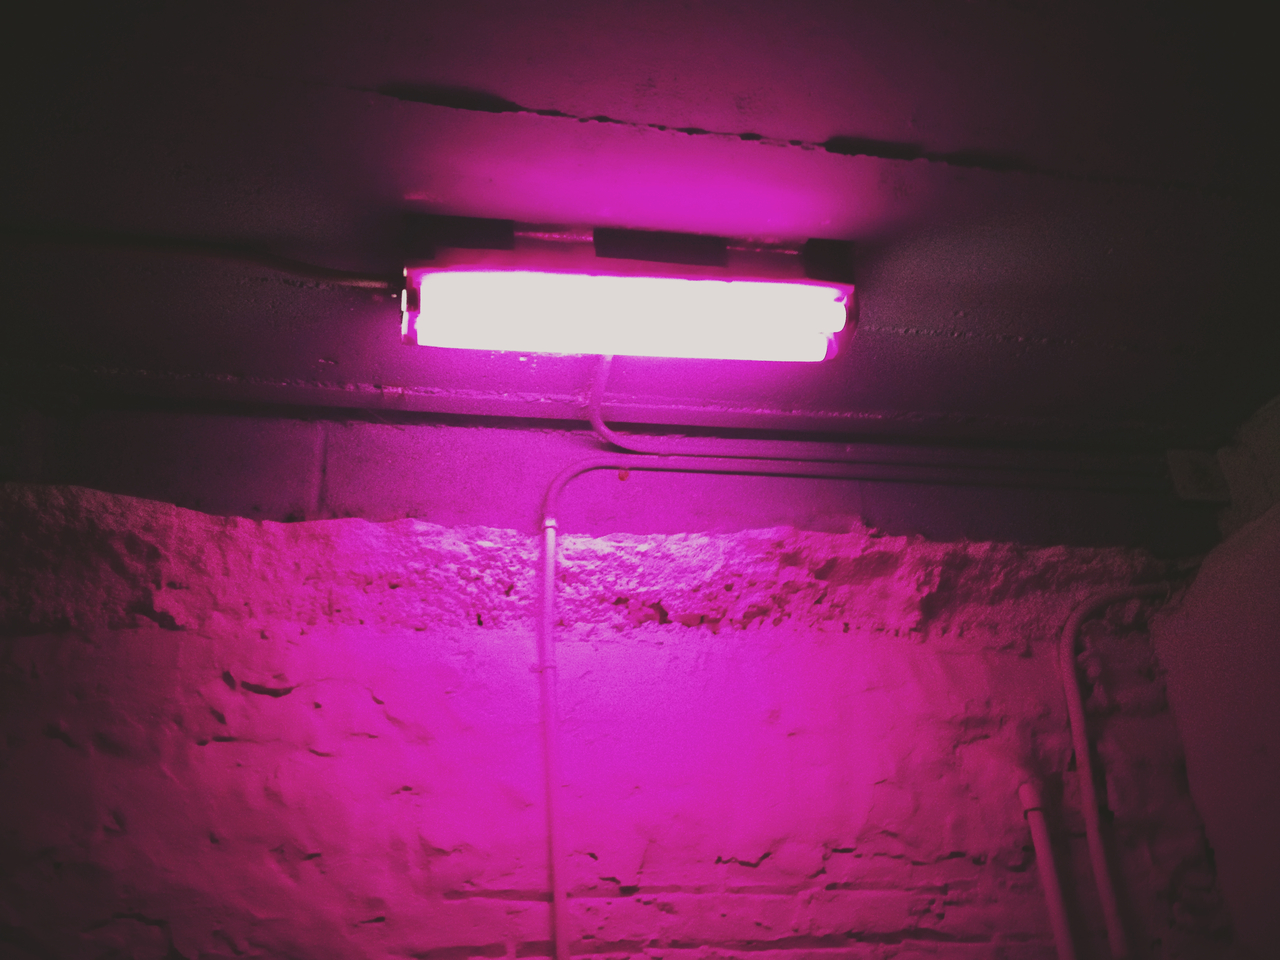 Purple Haze - #peppersearching #pepper #photos #lights #purple